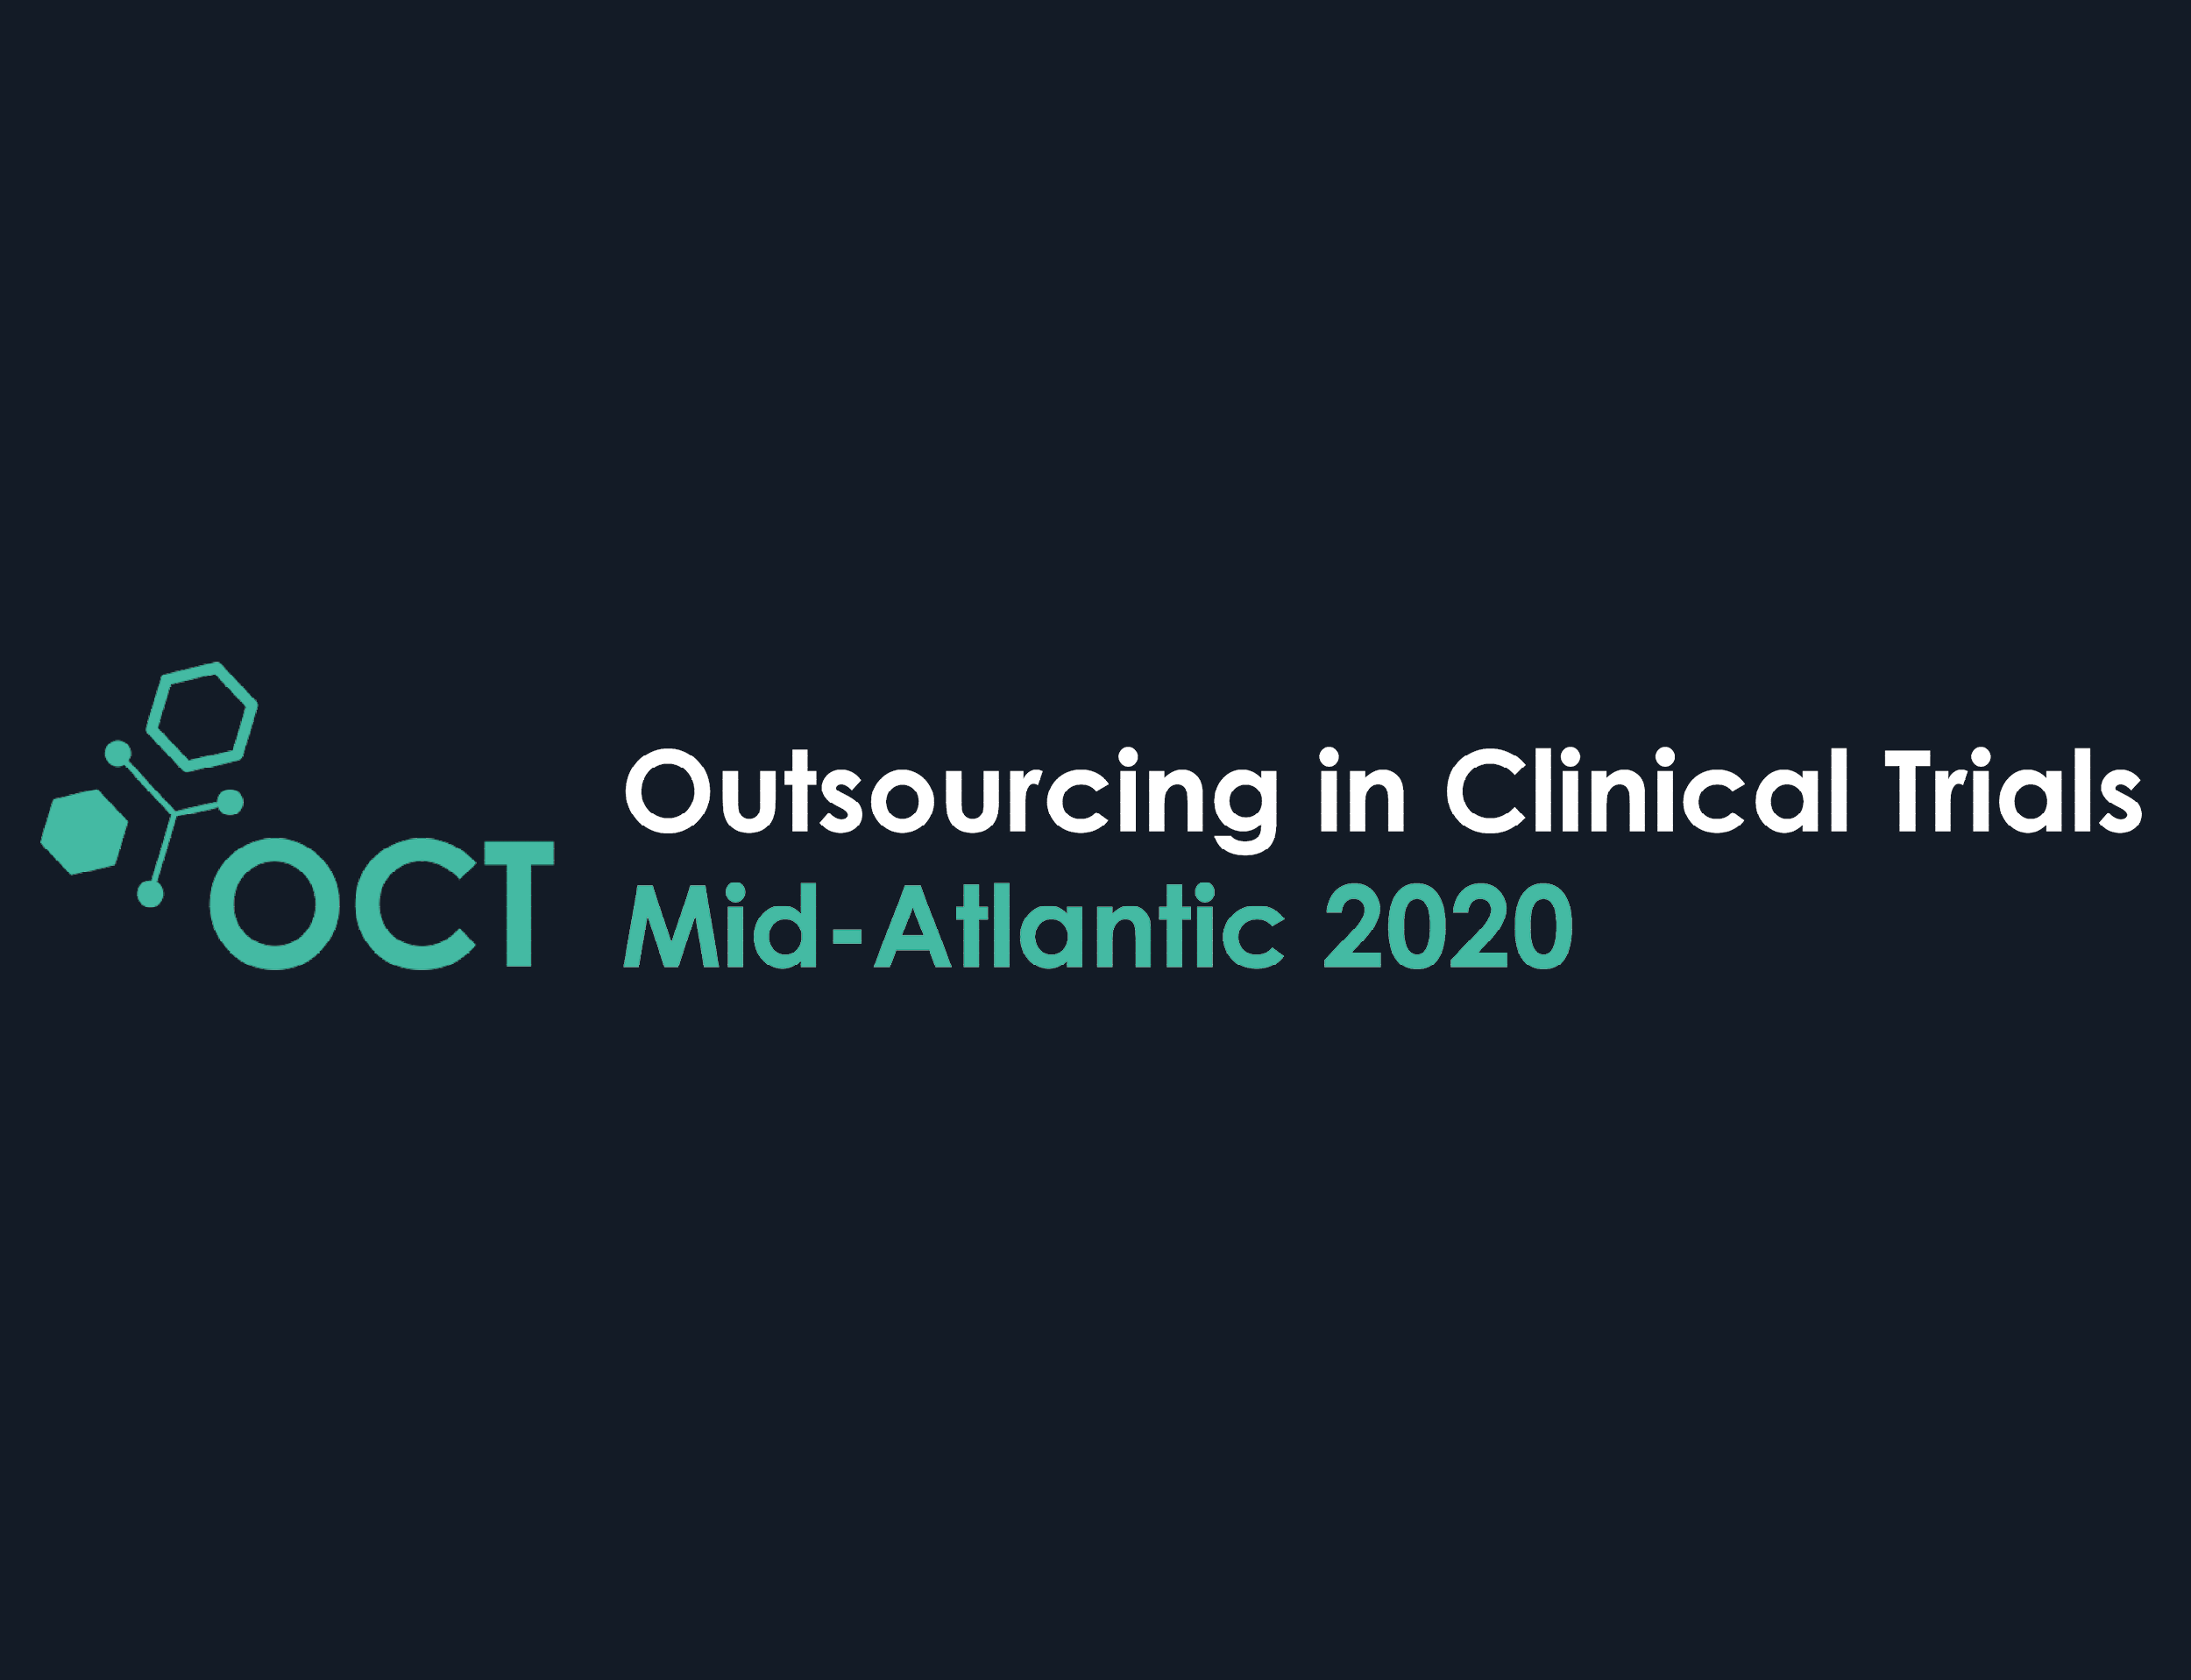 Outsourcing in Clinical Trials Mid-Atlantic 2020